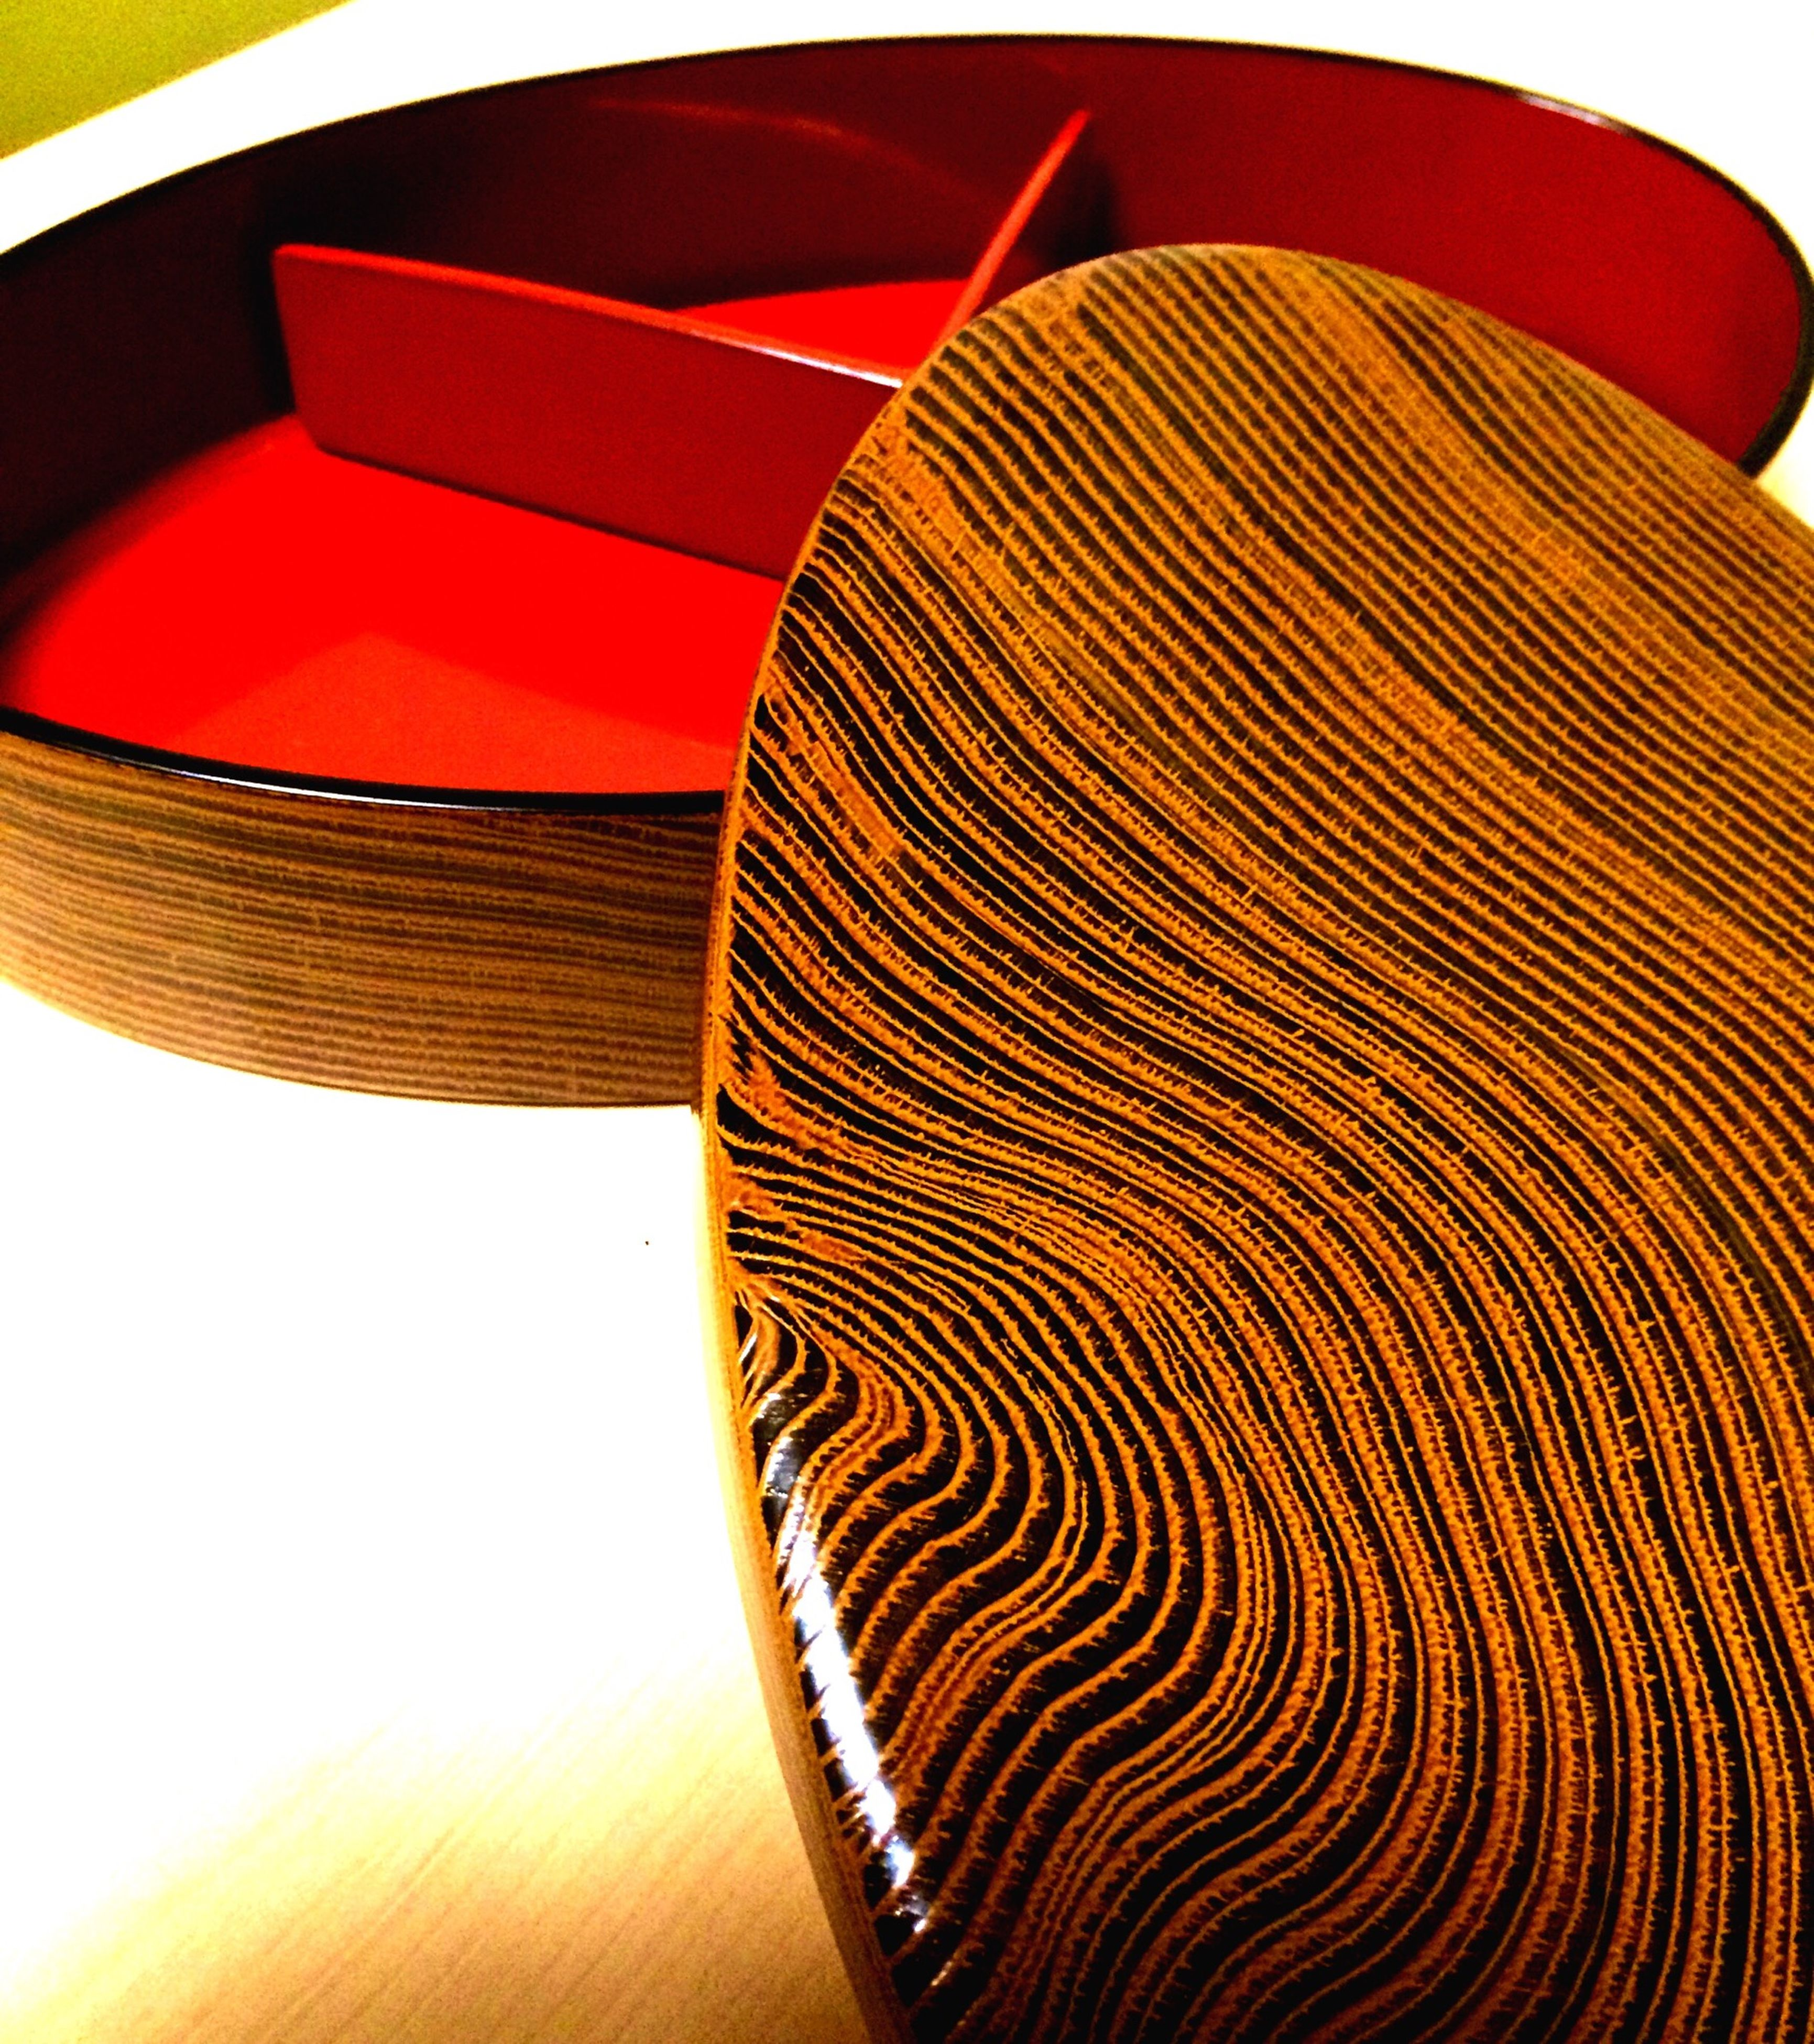 pattern, spiral, indoors, close-up, red, single object, striped, circle, no people, design, part of, wood - material, still life, orange color, shape, sunlight, wicker, arts culture and entertainment, geometric shape, day